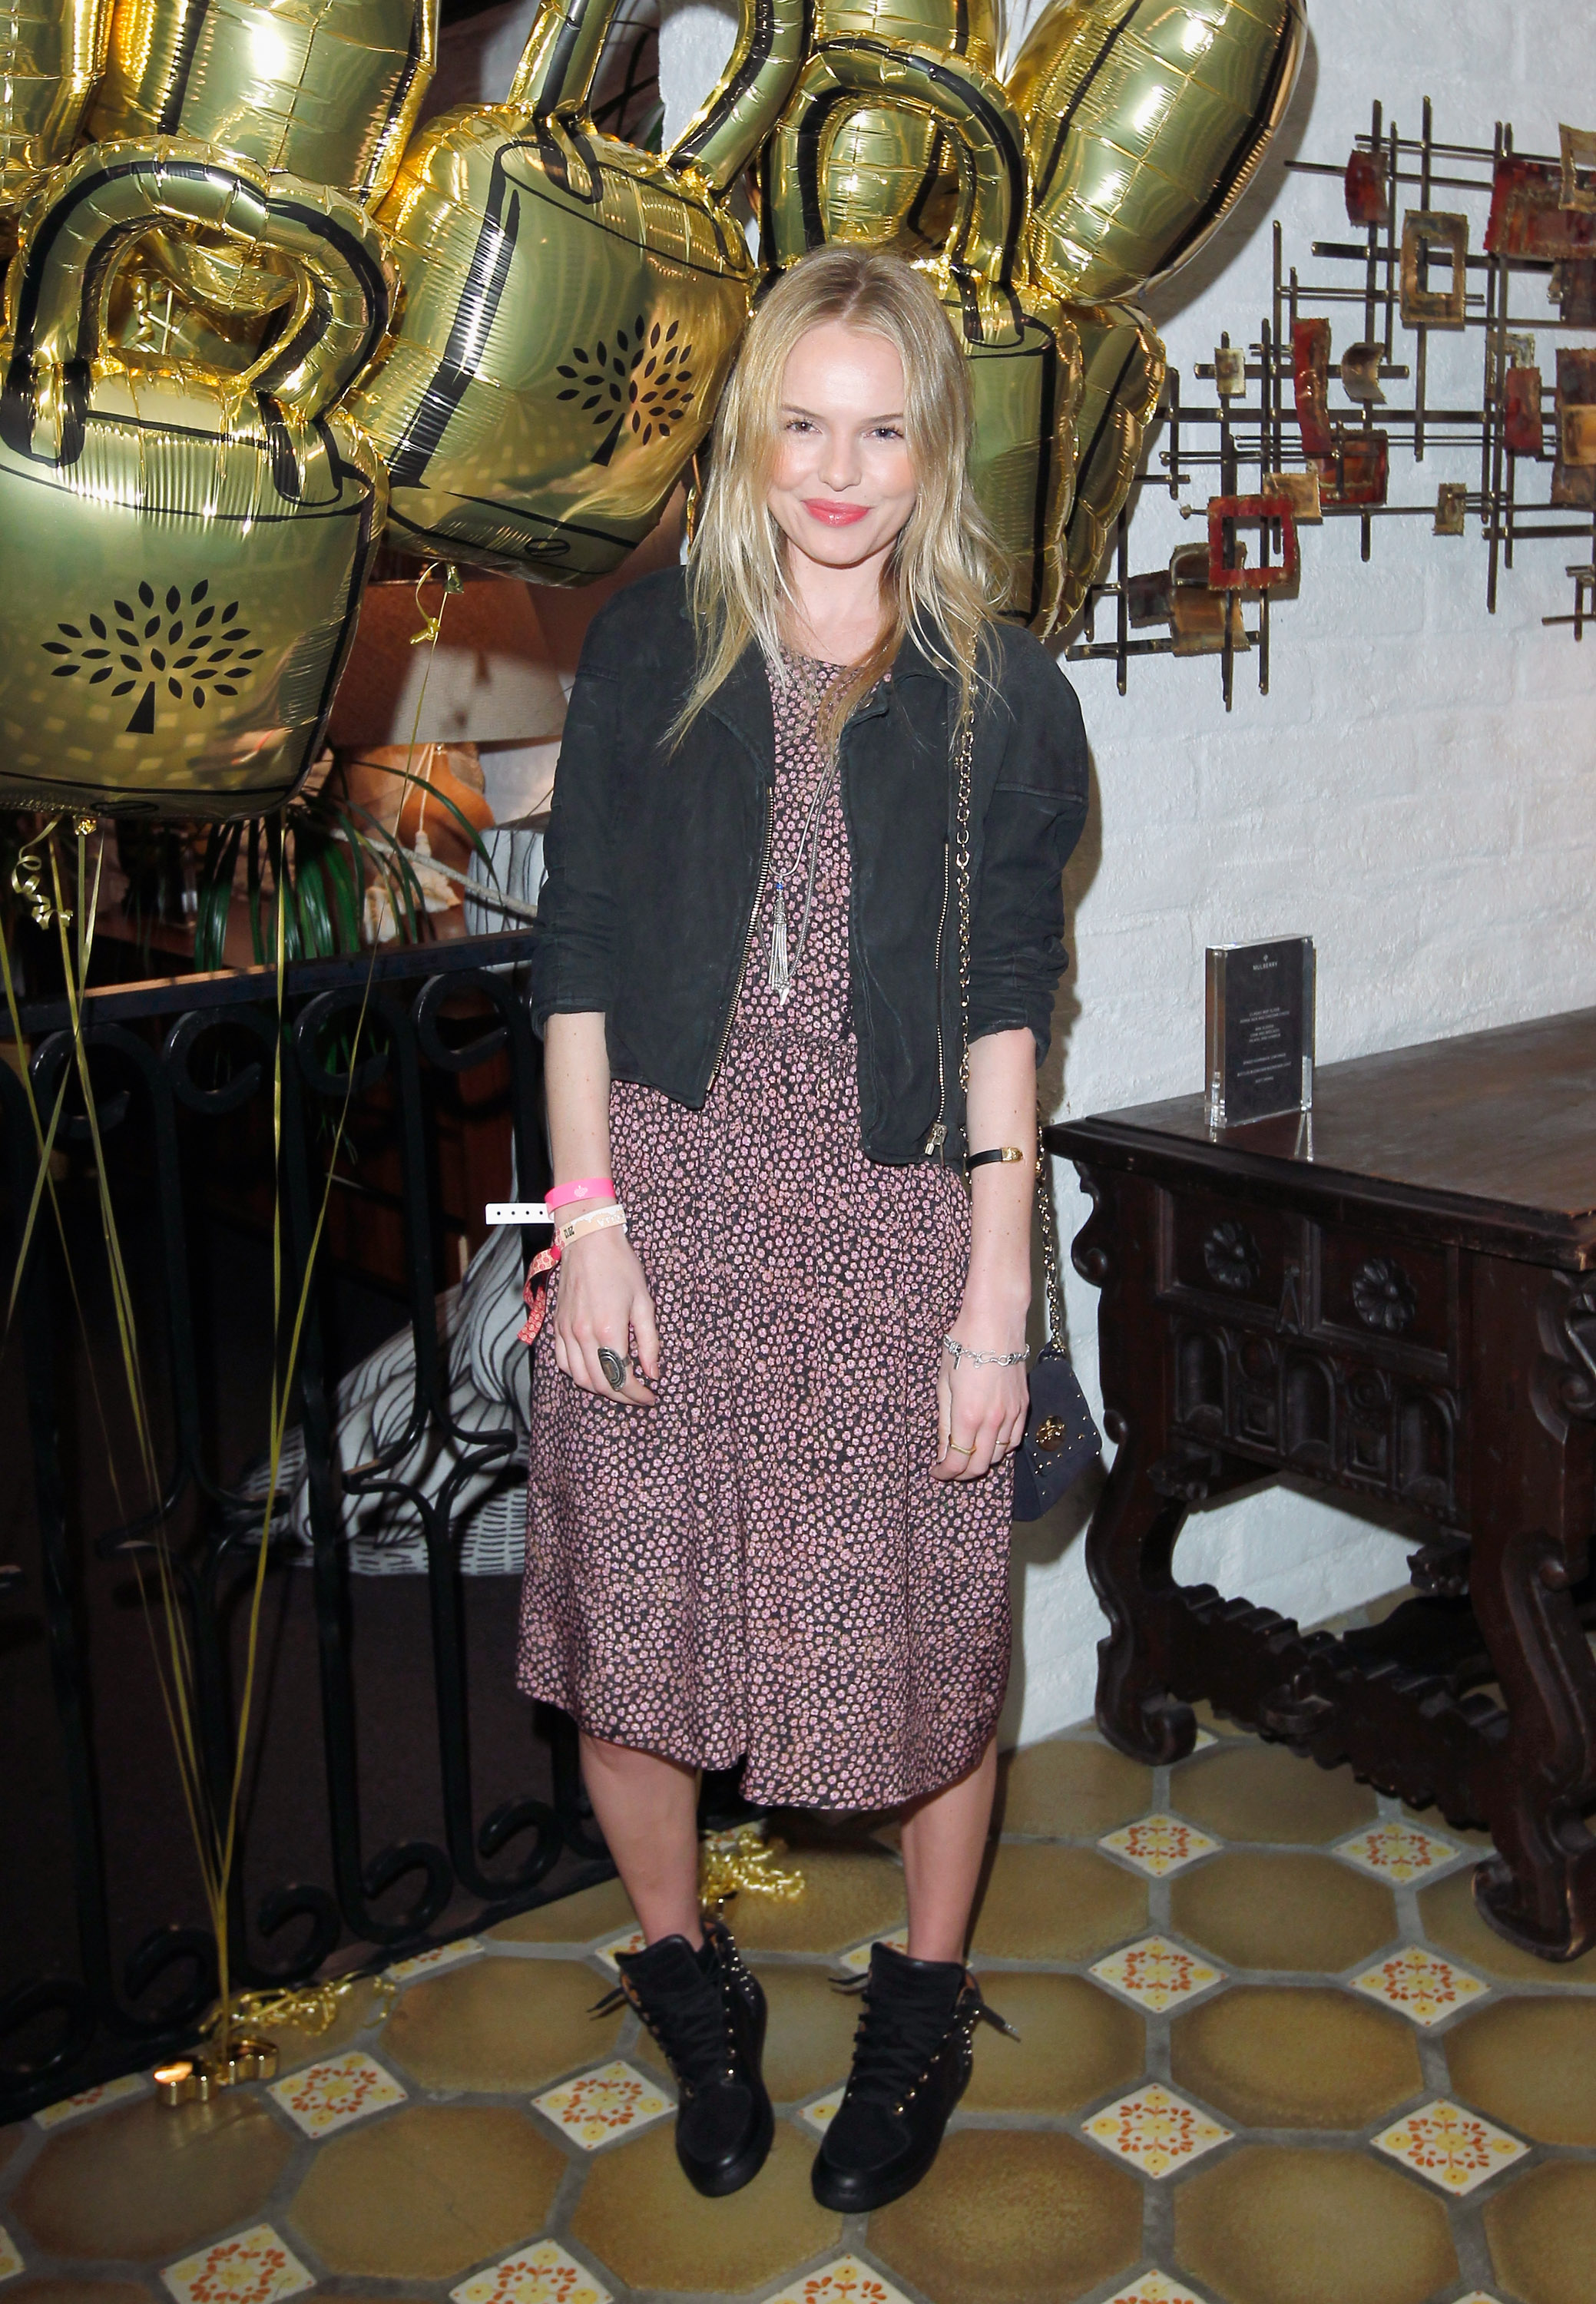 Kate Bosworth changed into a long dress to attend Mulberry's Coachella party in 2012.